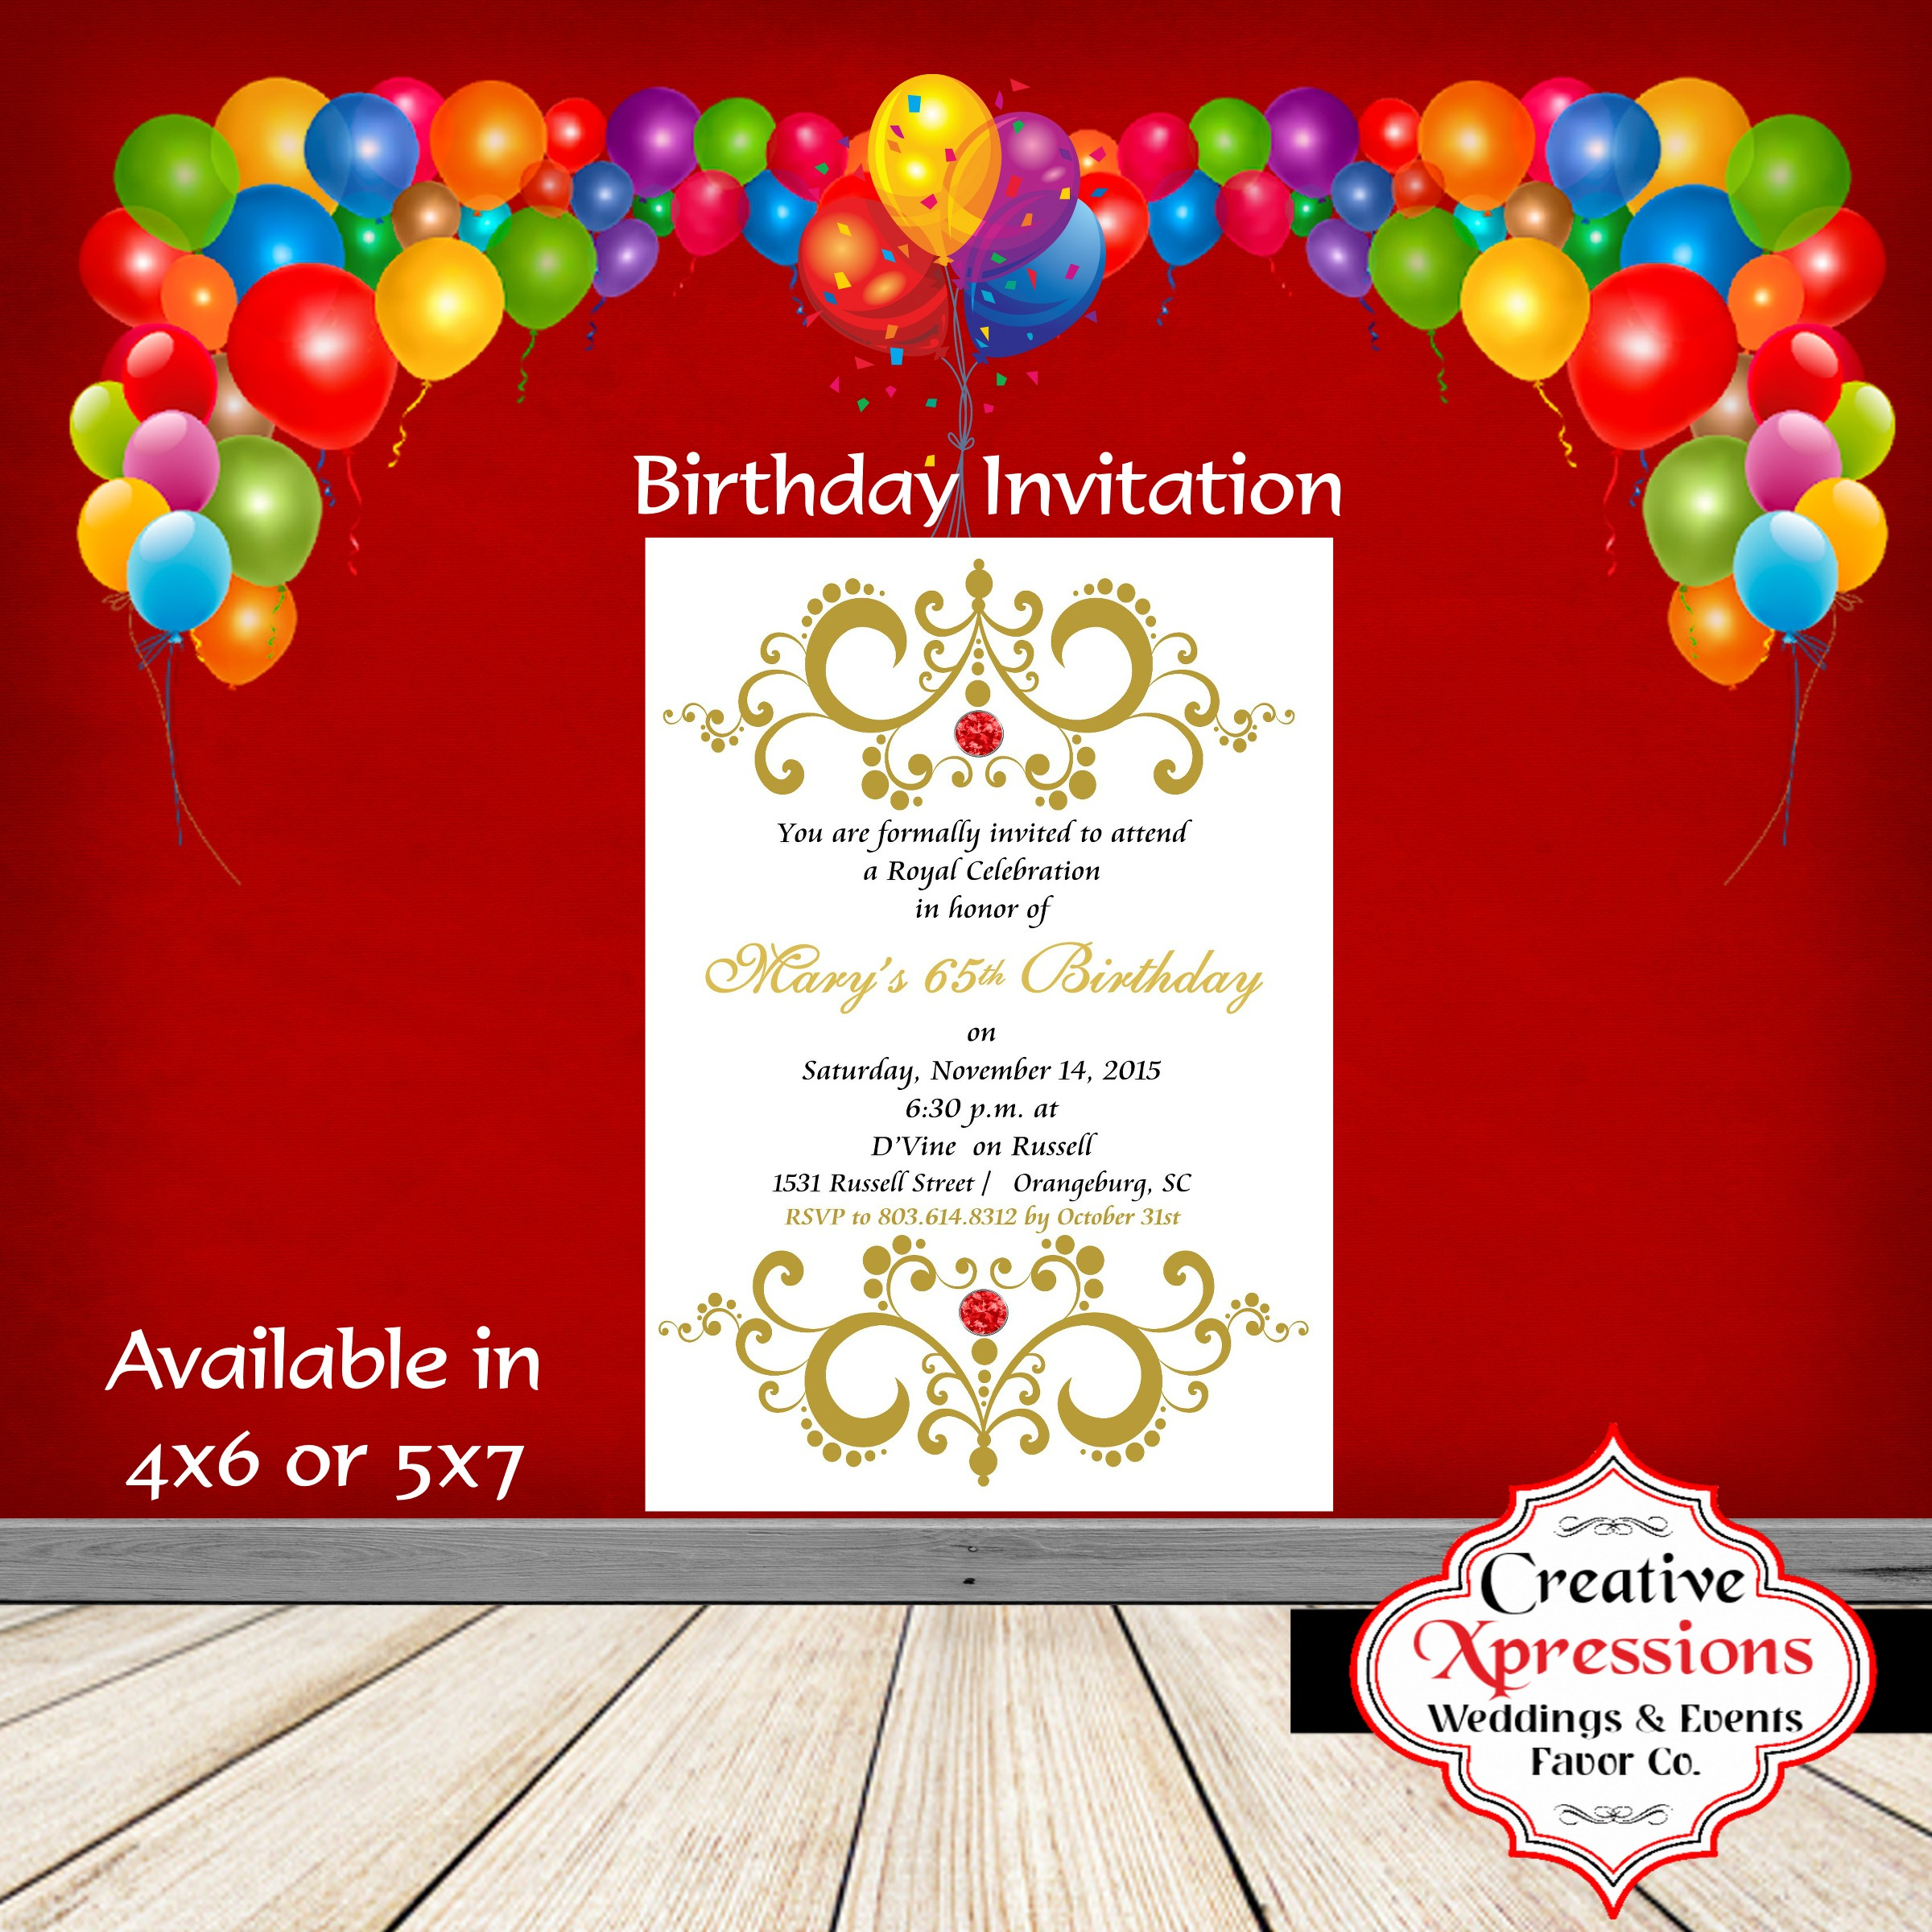 Royal Glory Birthday Invitation